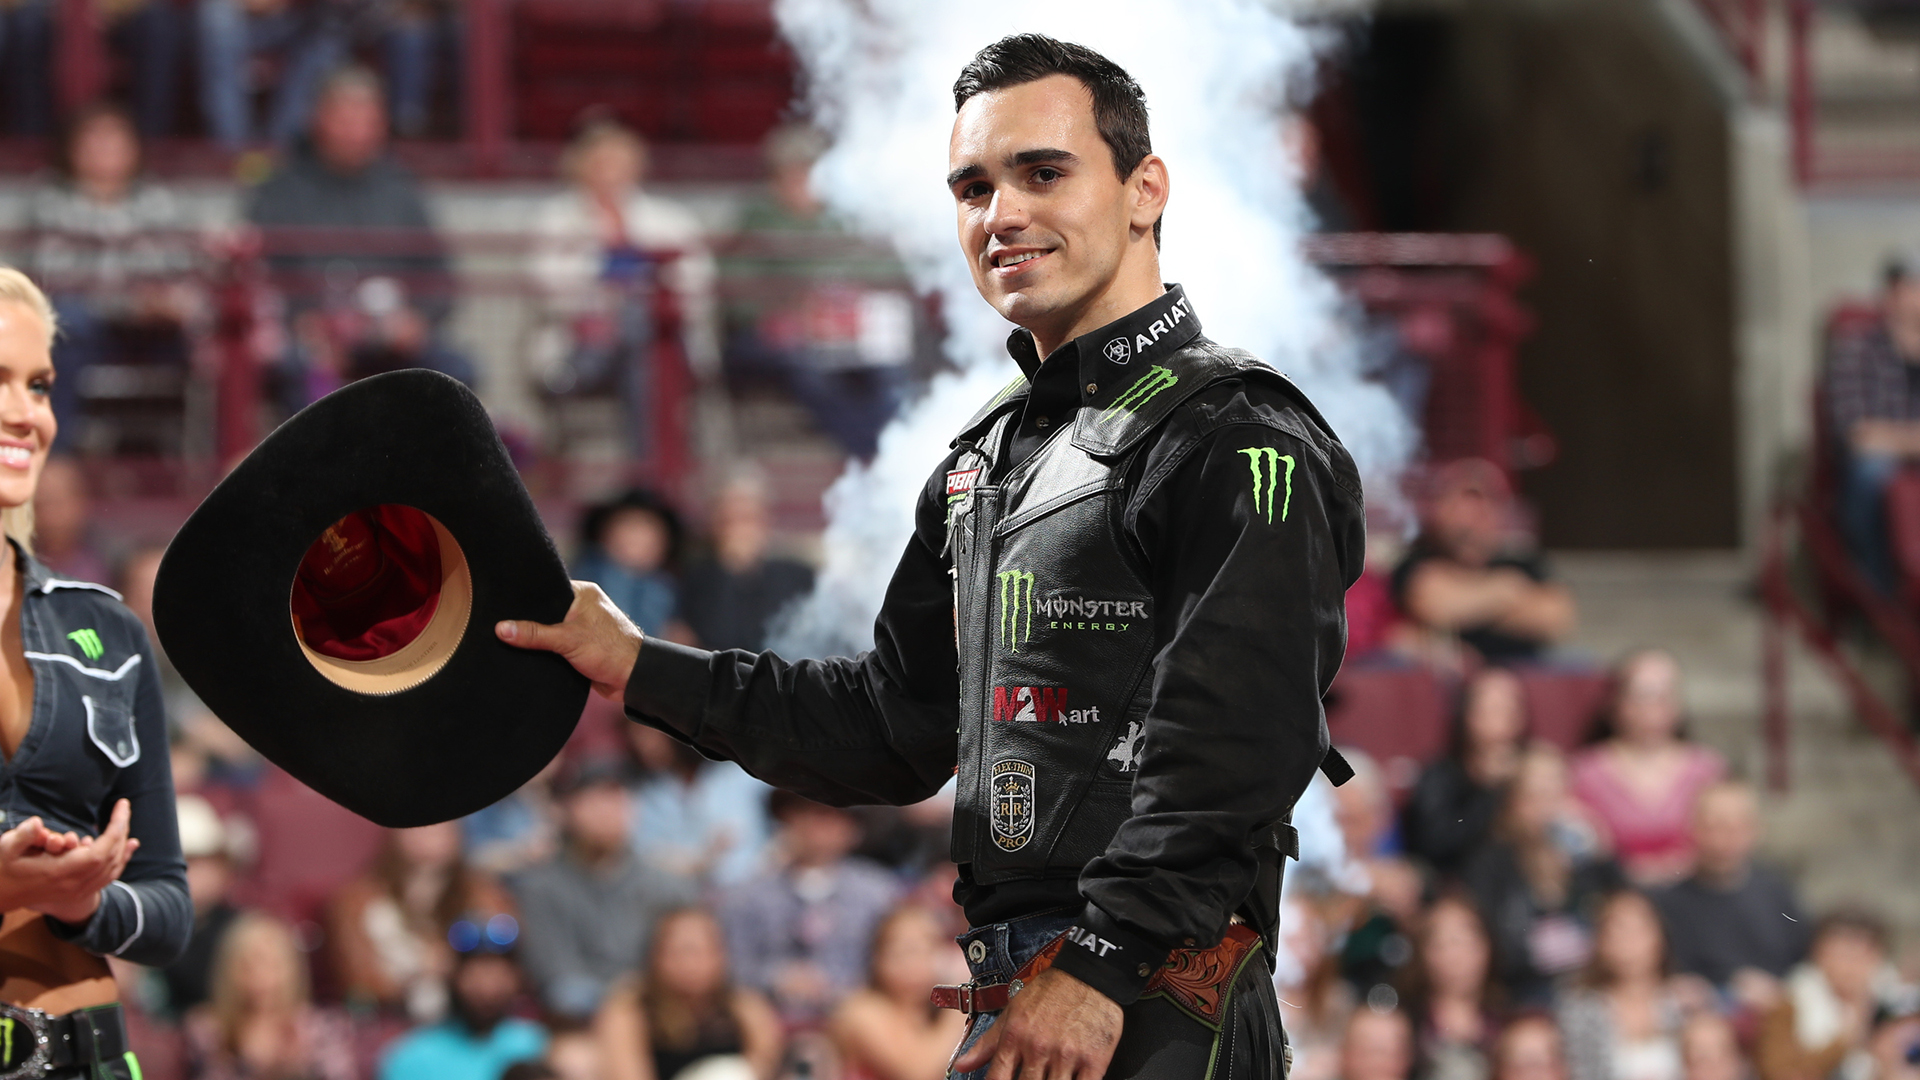 Leme extends lead atop world rankings with 15/15 Bucking Battle win in Columbus